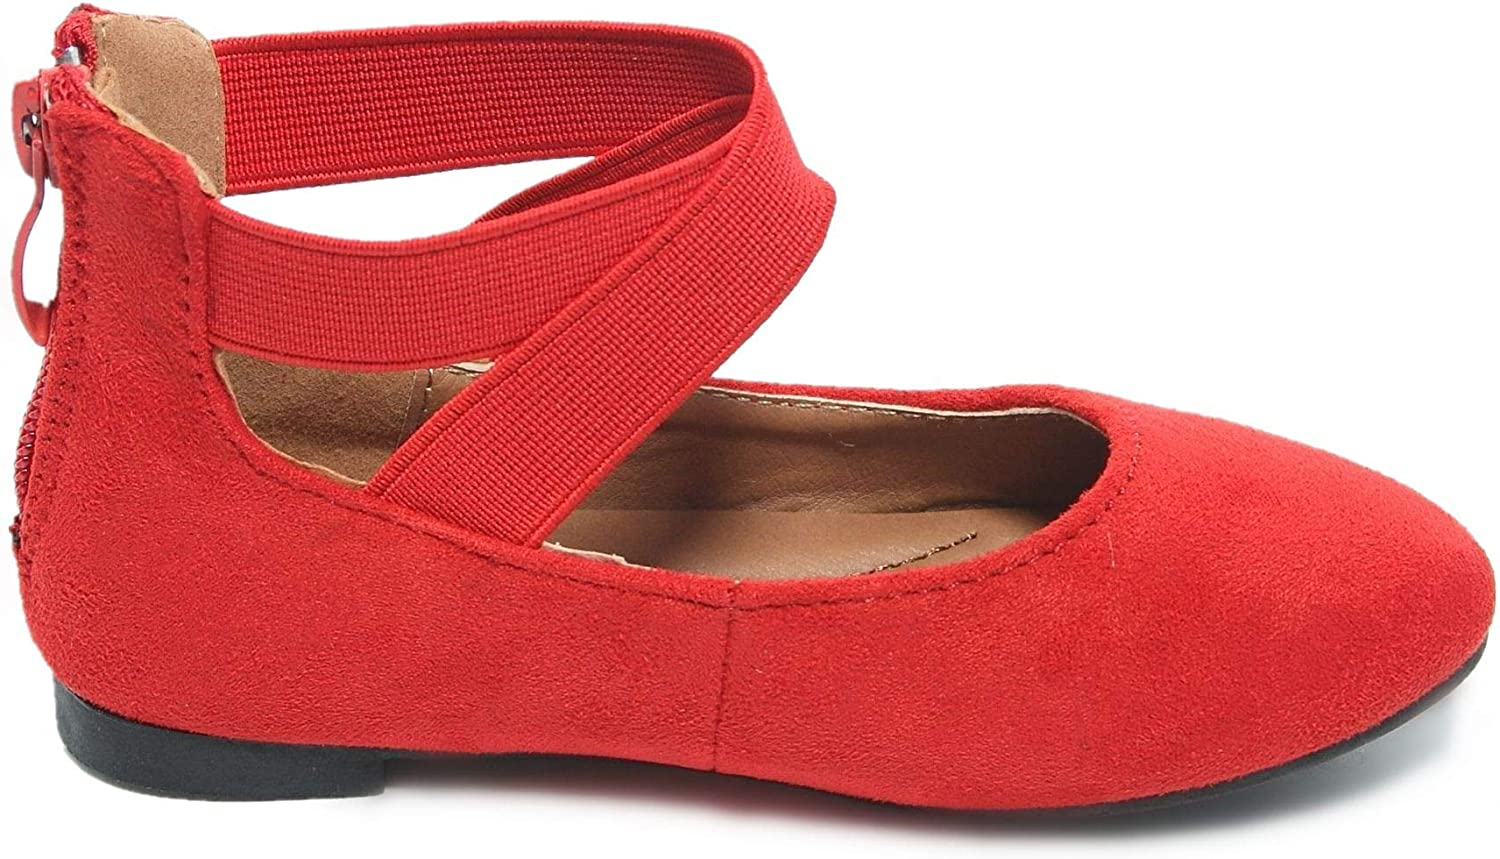 ANNA Girl Kids Dress Ballet Flat Elastic Ankle Strap Faux Suede Shoes